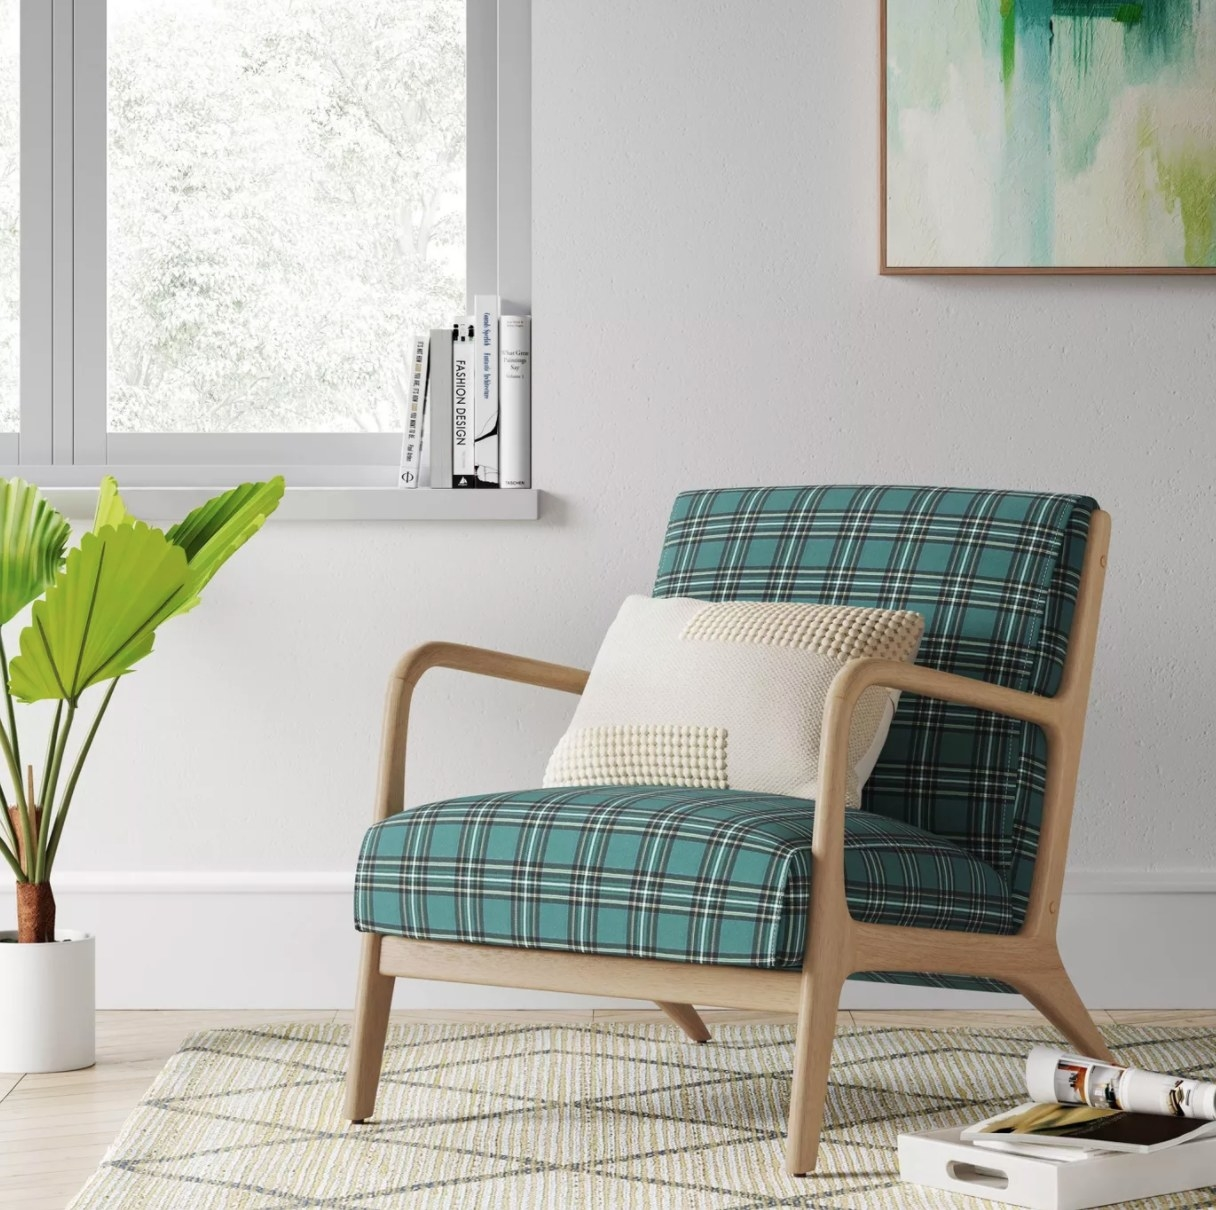 The plaid armchair